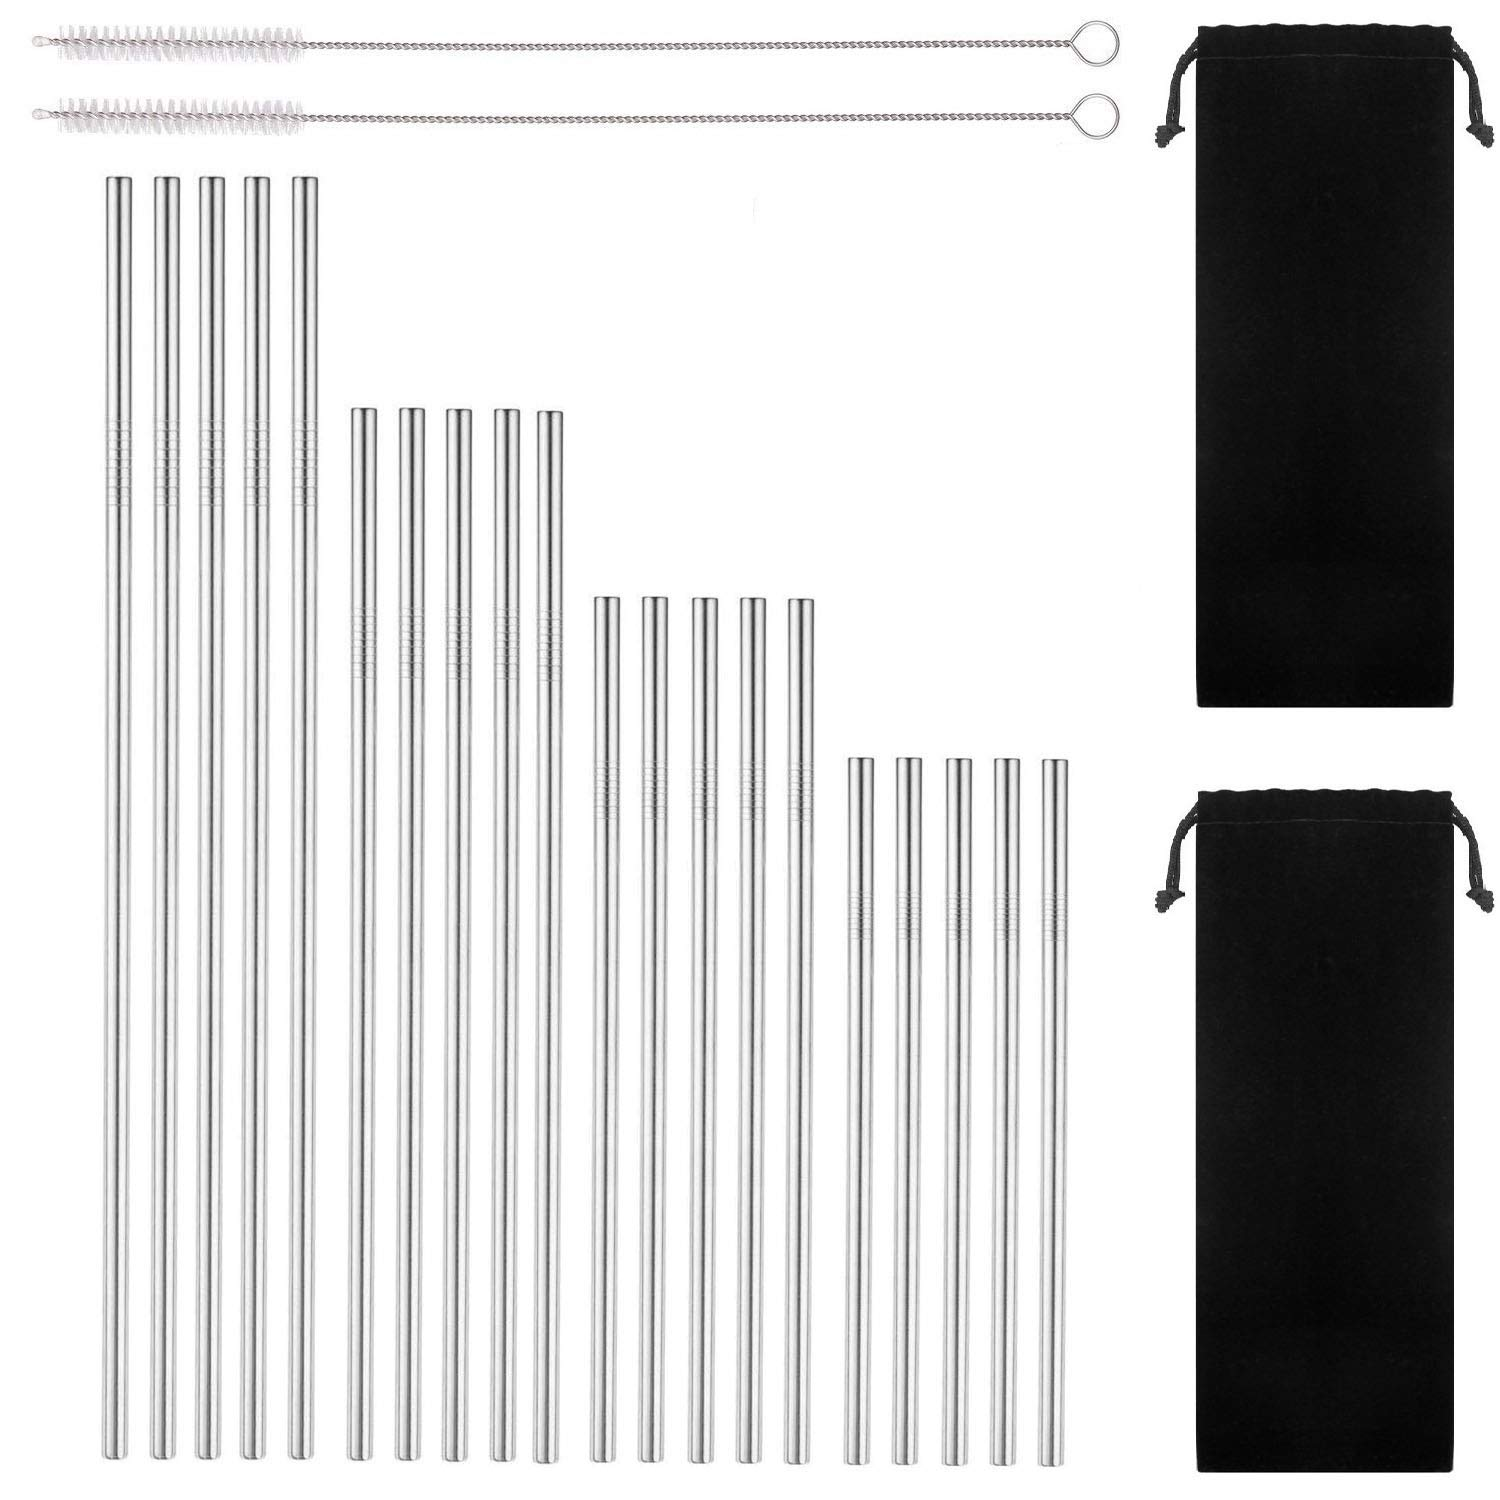 Reusable Stainless Steel Drinking Straws, 20 Pcs 4 Size - 6.3'' 7.1'' 8.5'' 10.5'', BPA Free Long Short Smoothie Drinking Straight Straws With 2 Brushes and 2 Carry bag, Fit for 20/30 oz Tumblers by BGMAXimum